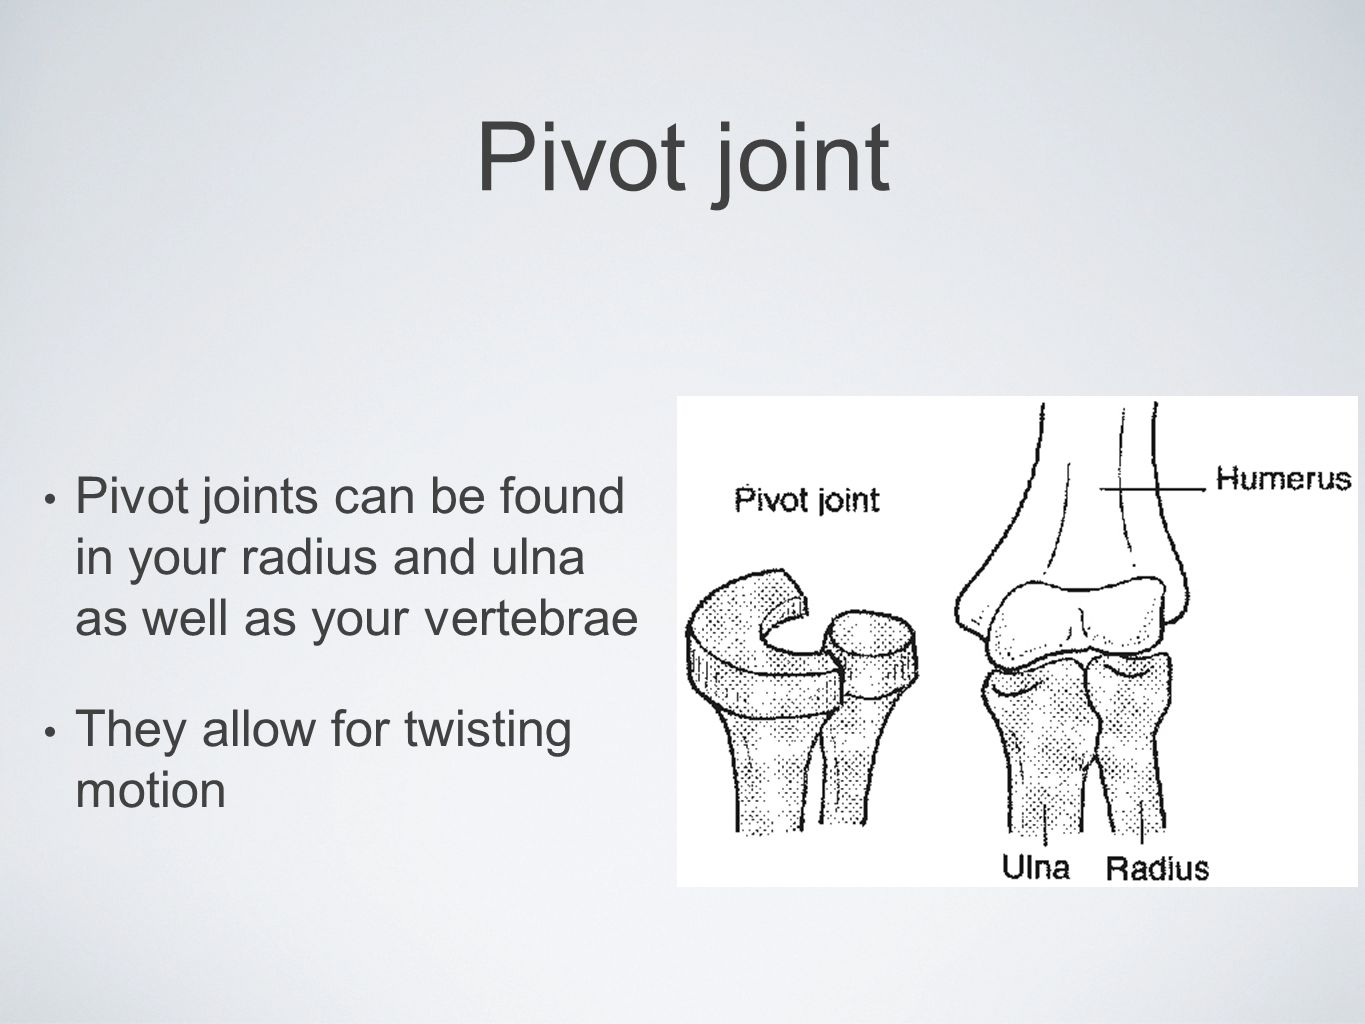 Pivot joint Pivot joints can be found in your radius and ulna as well as your vertebrae.